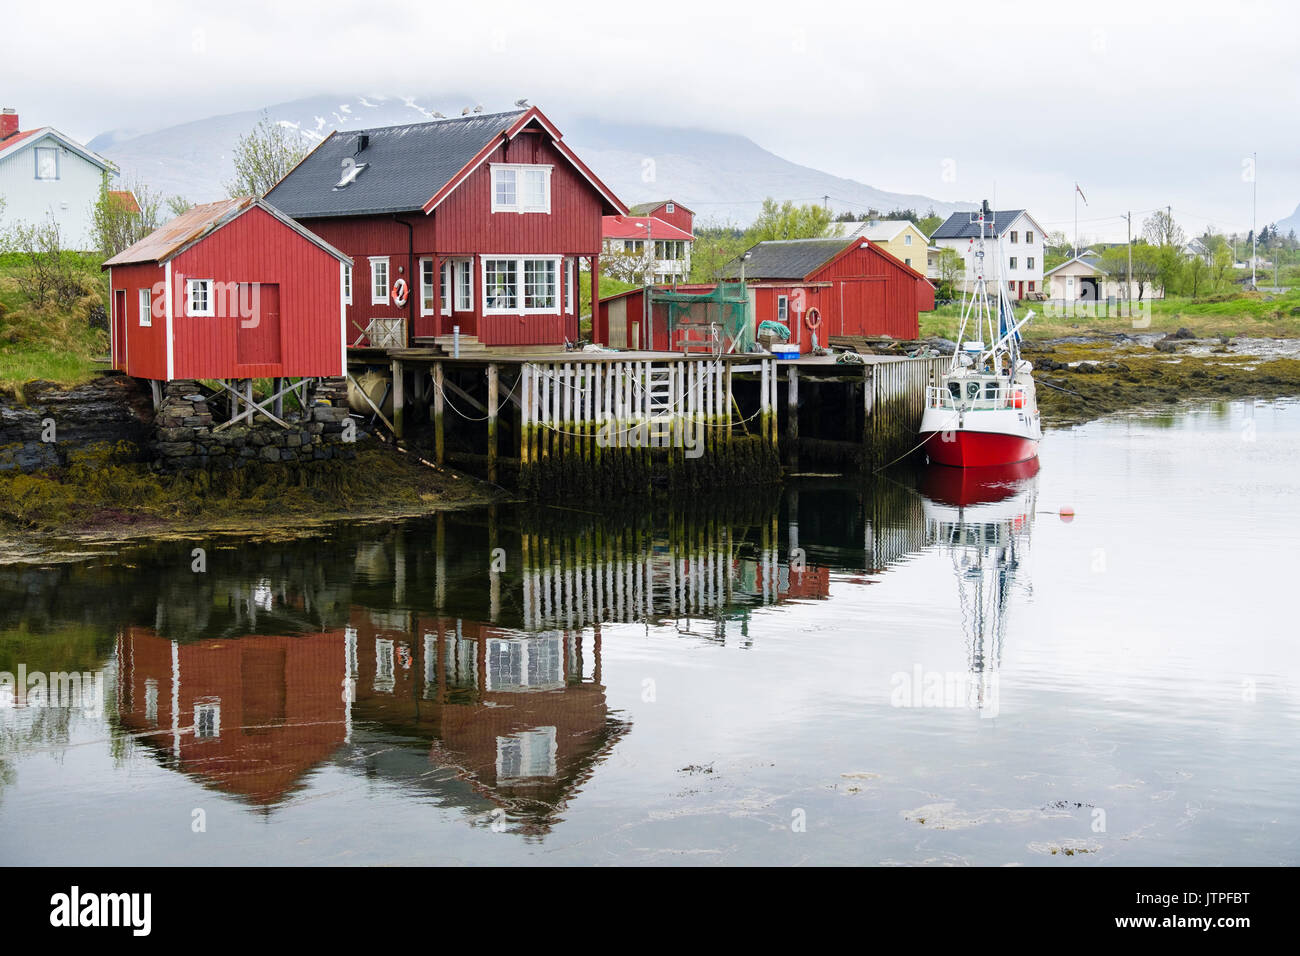 Fishing village with boats and wooden buildings on stilts. Nes, Vega Island, Norway, Scandinavia - Stock Image